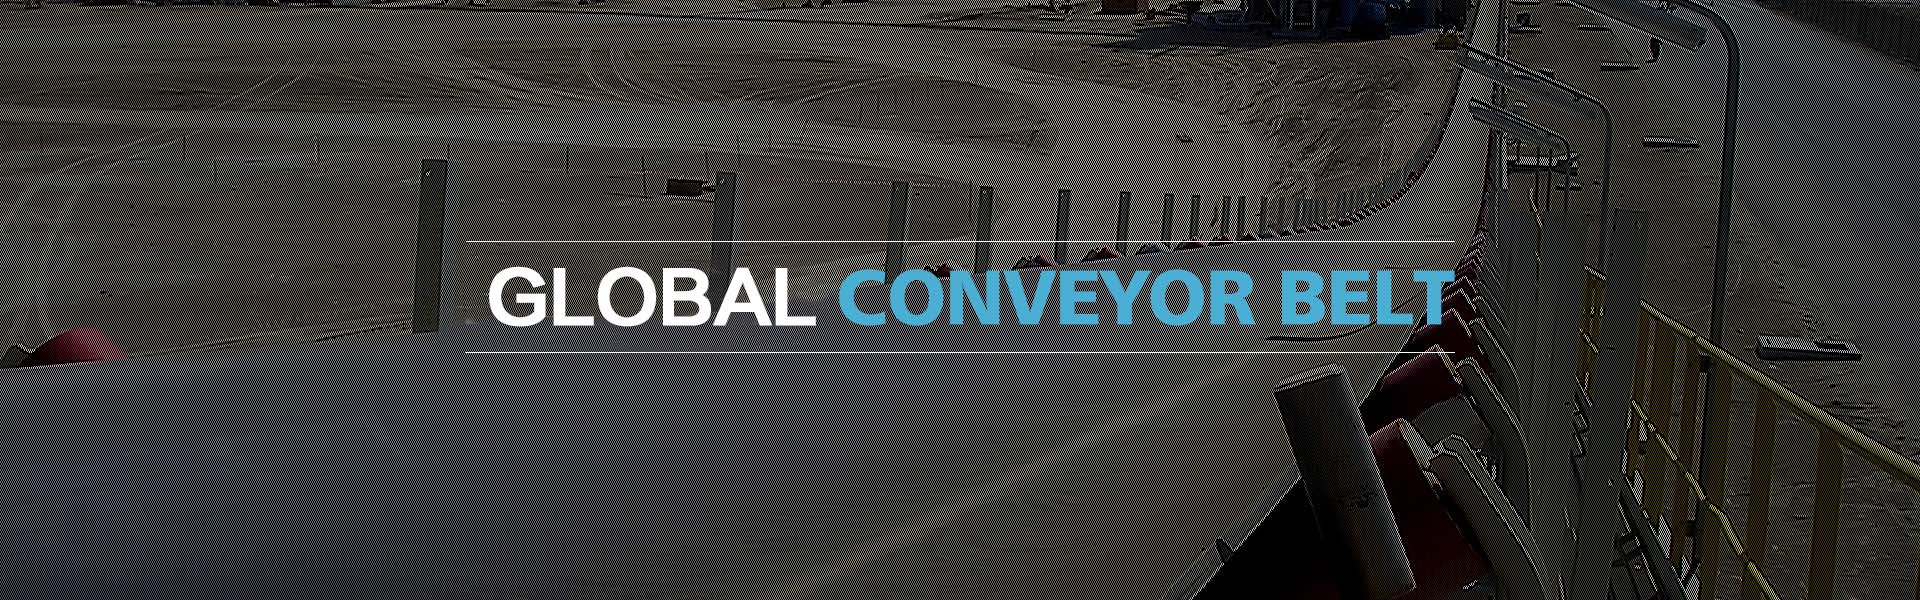 HeBei Global Technology conveyor